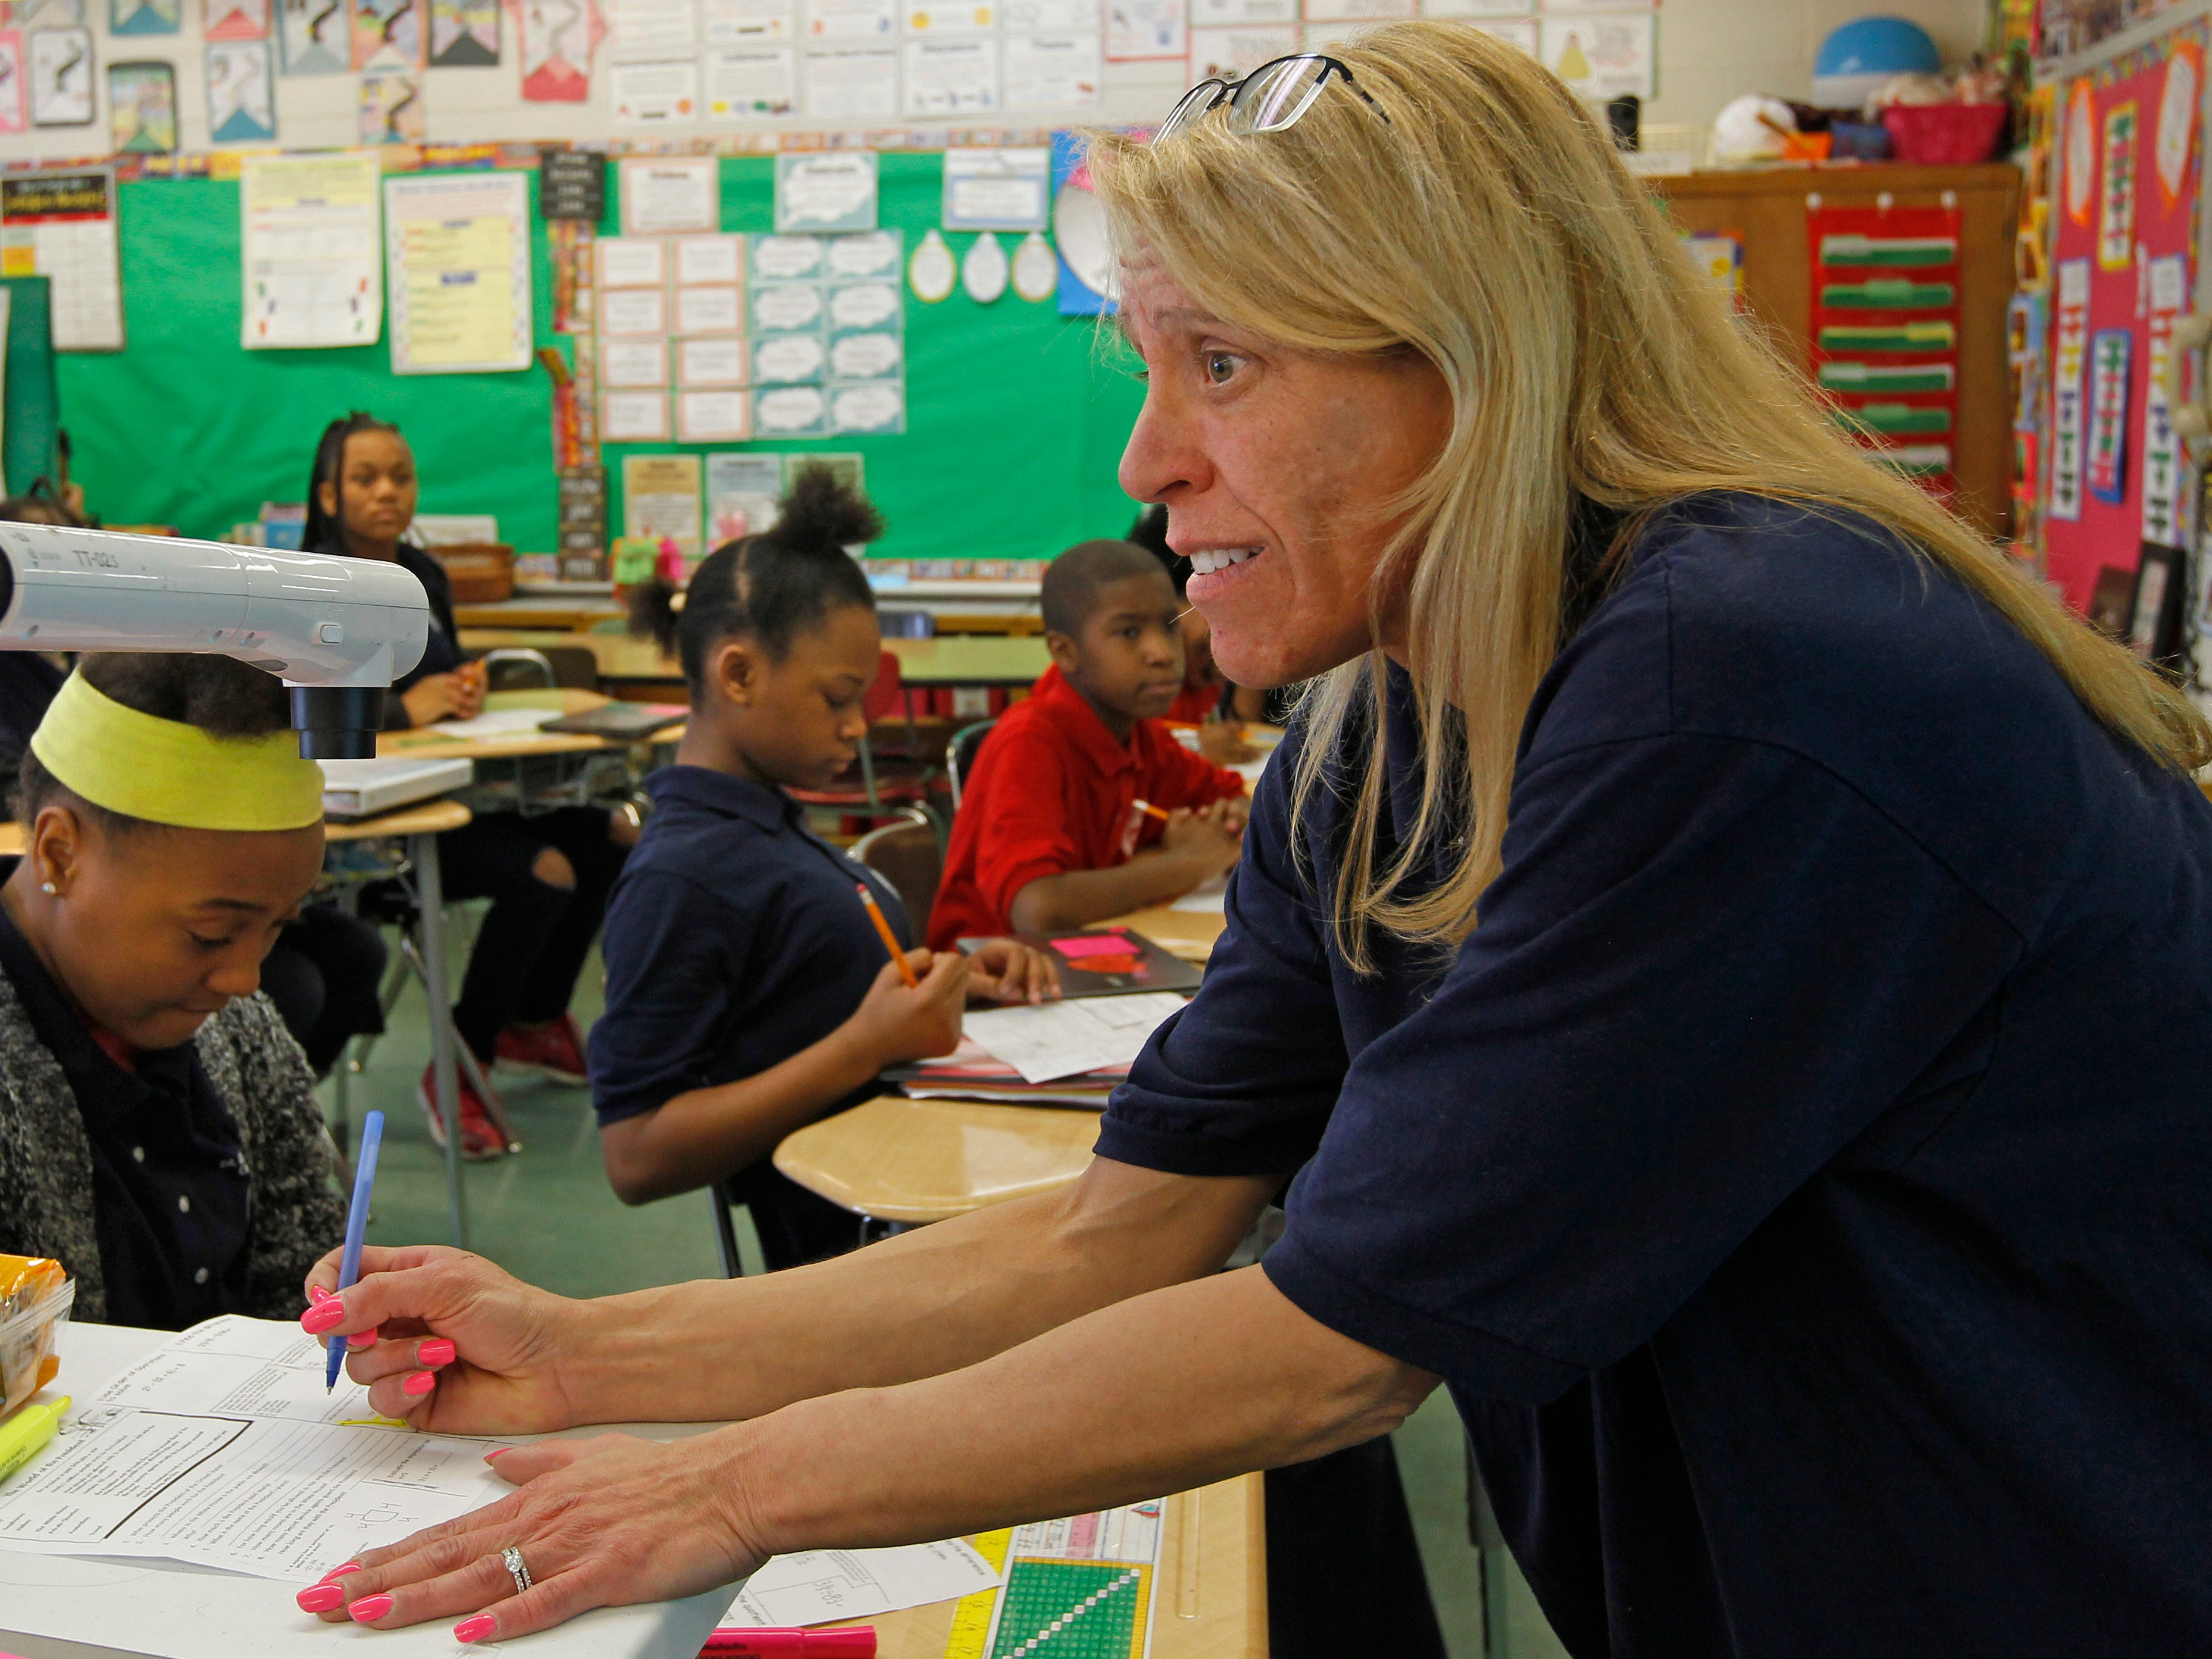 Sixth grade teacher Angela Kaper reviews math lesson with students April 13 at Carver Academy.